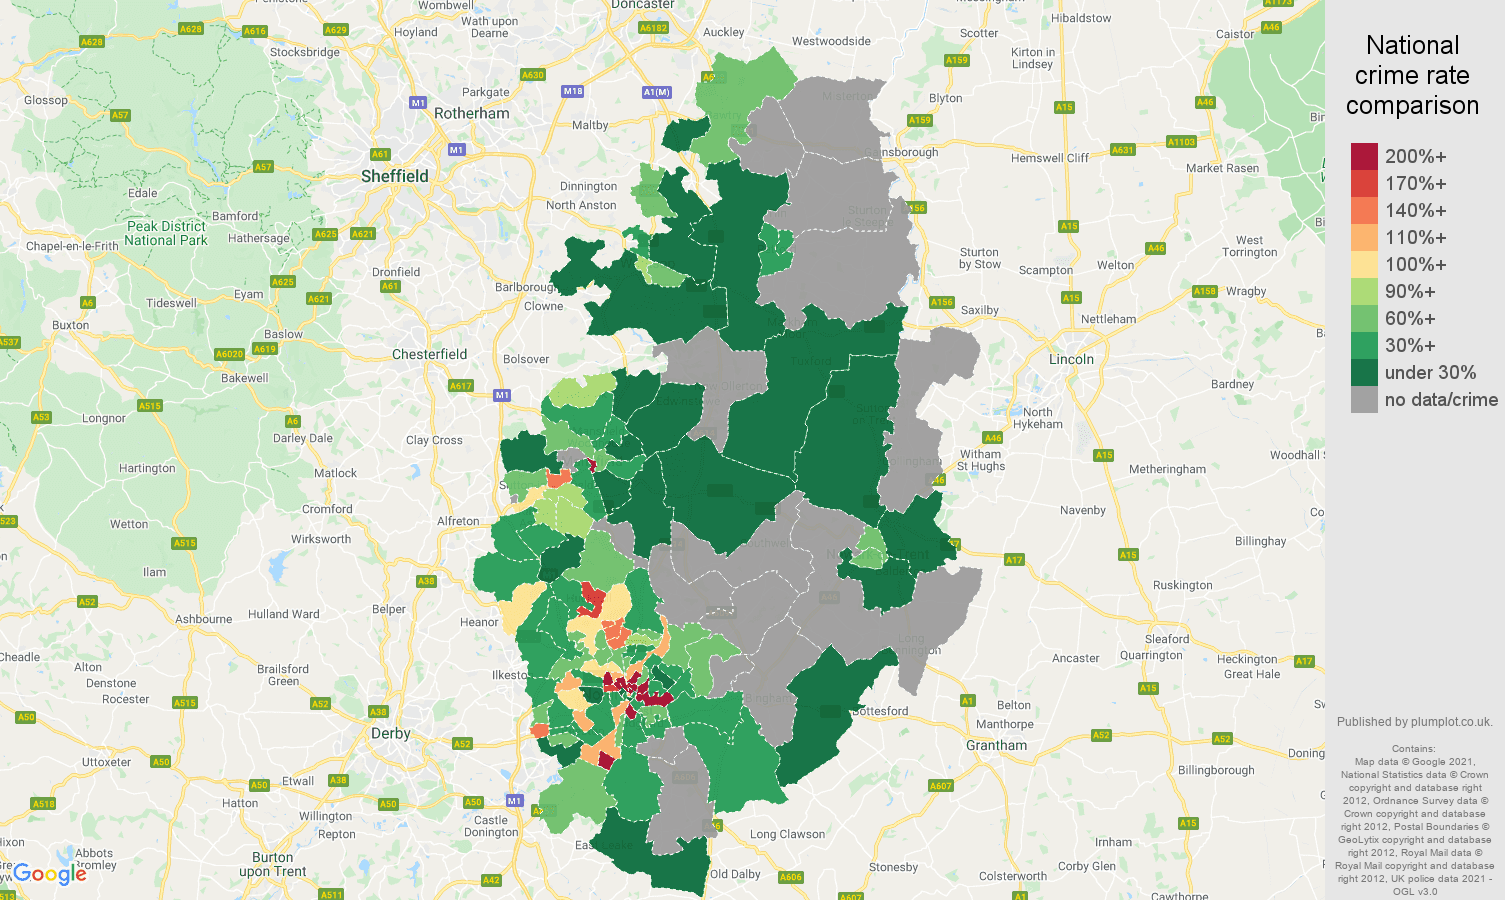 Nottinghamshire robbery crime rate comparison map